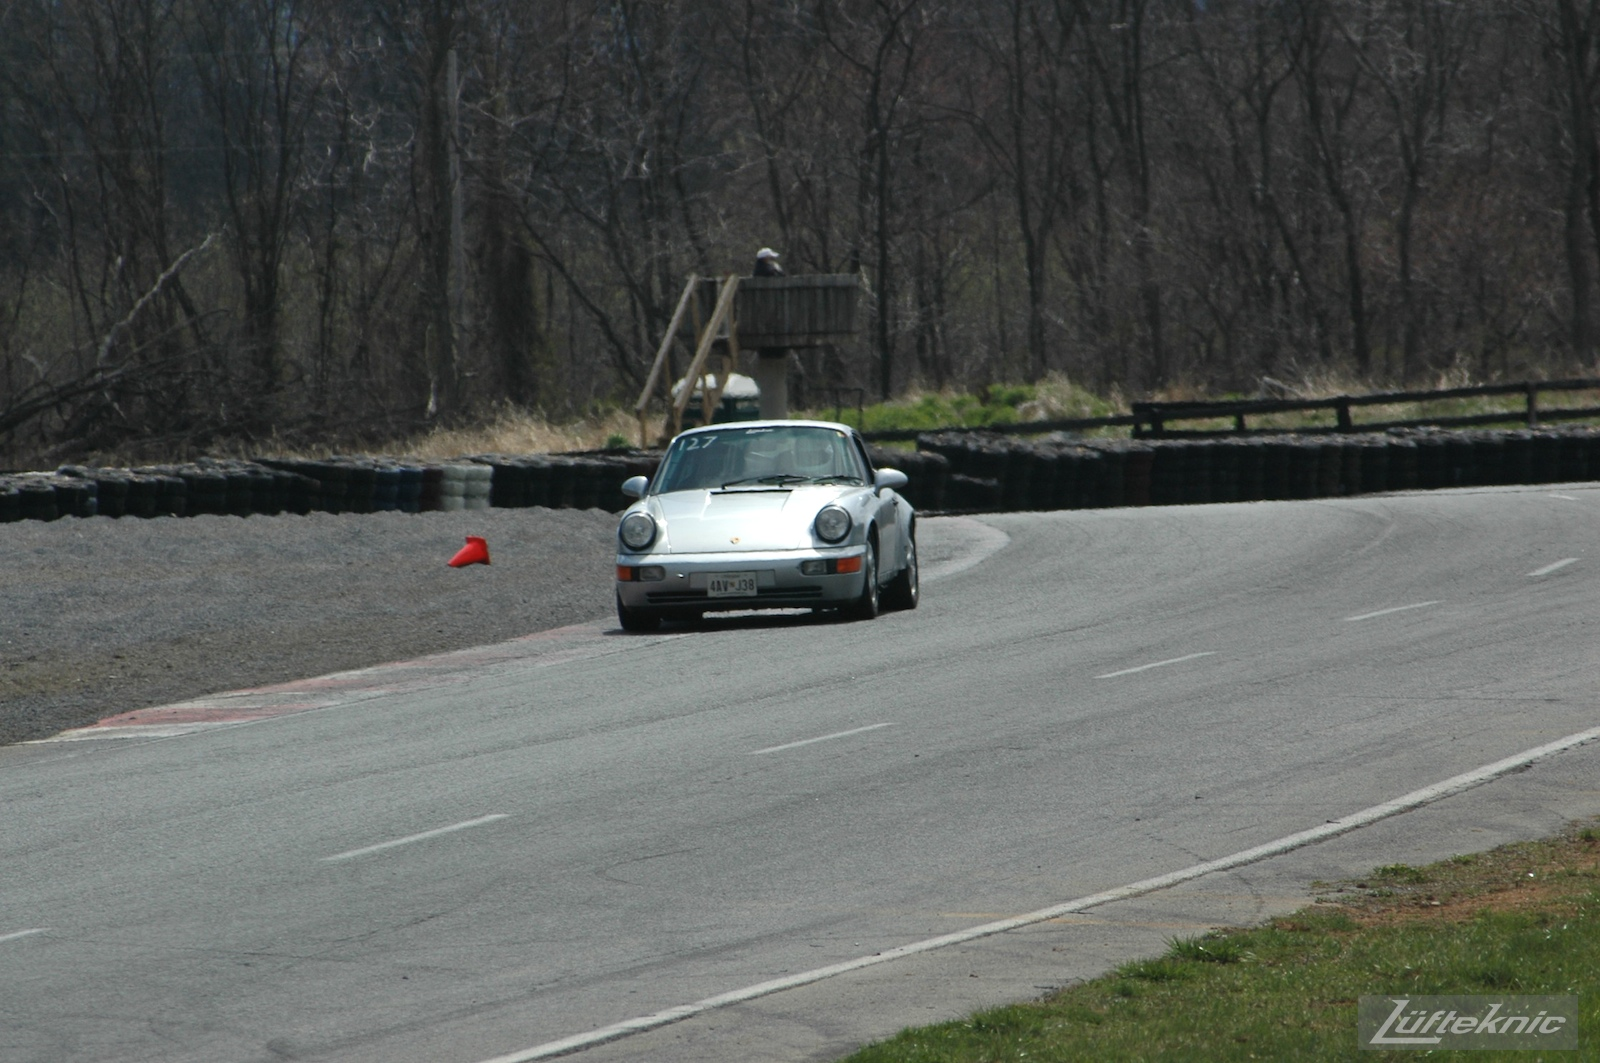 The 964 RS America on track for the first time after the accident, on a straightway.